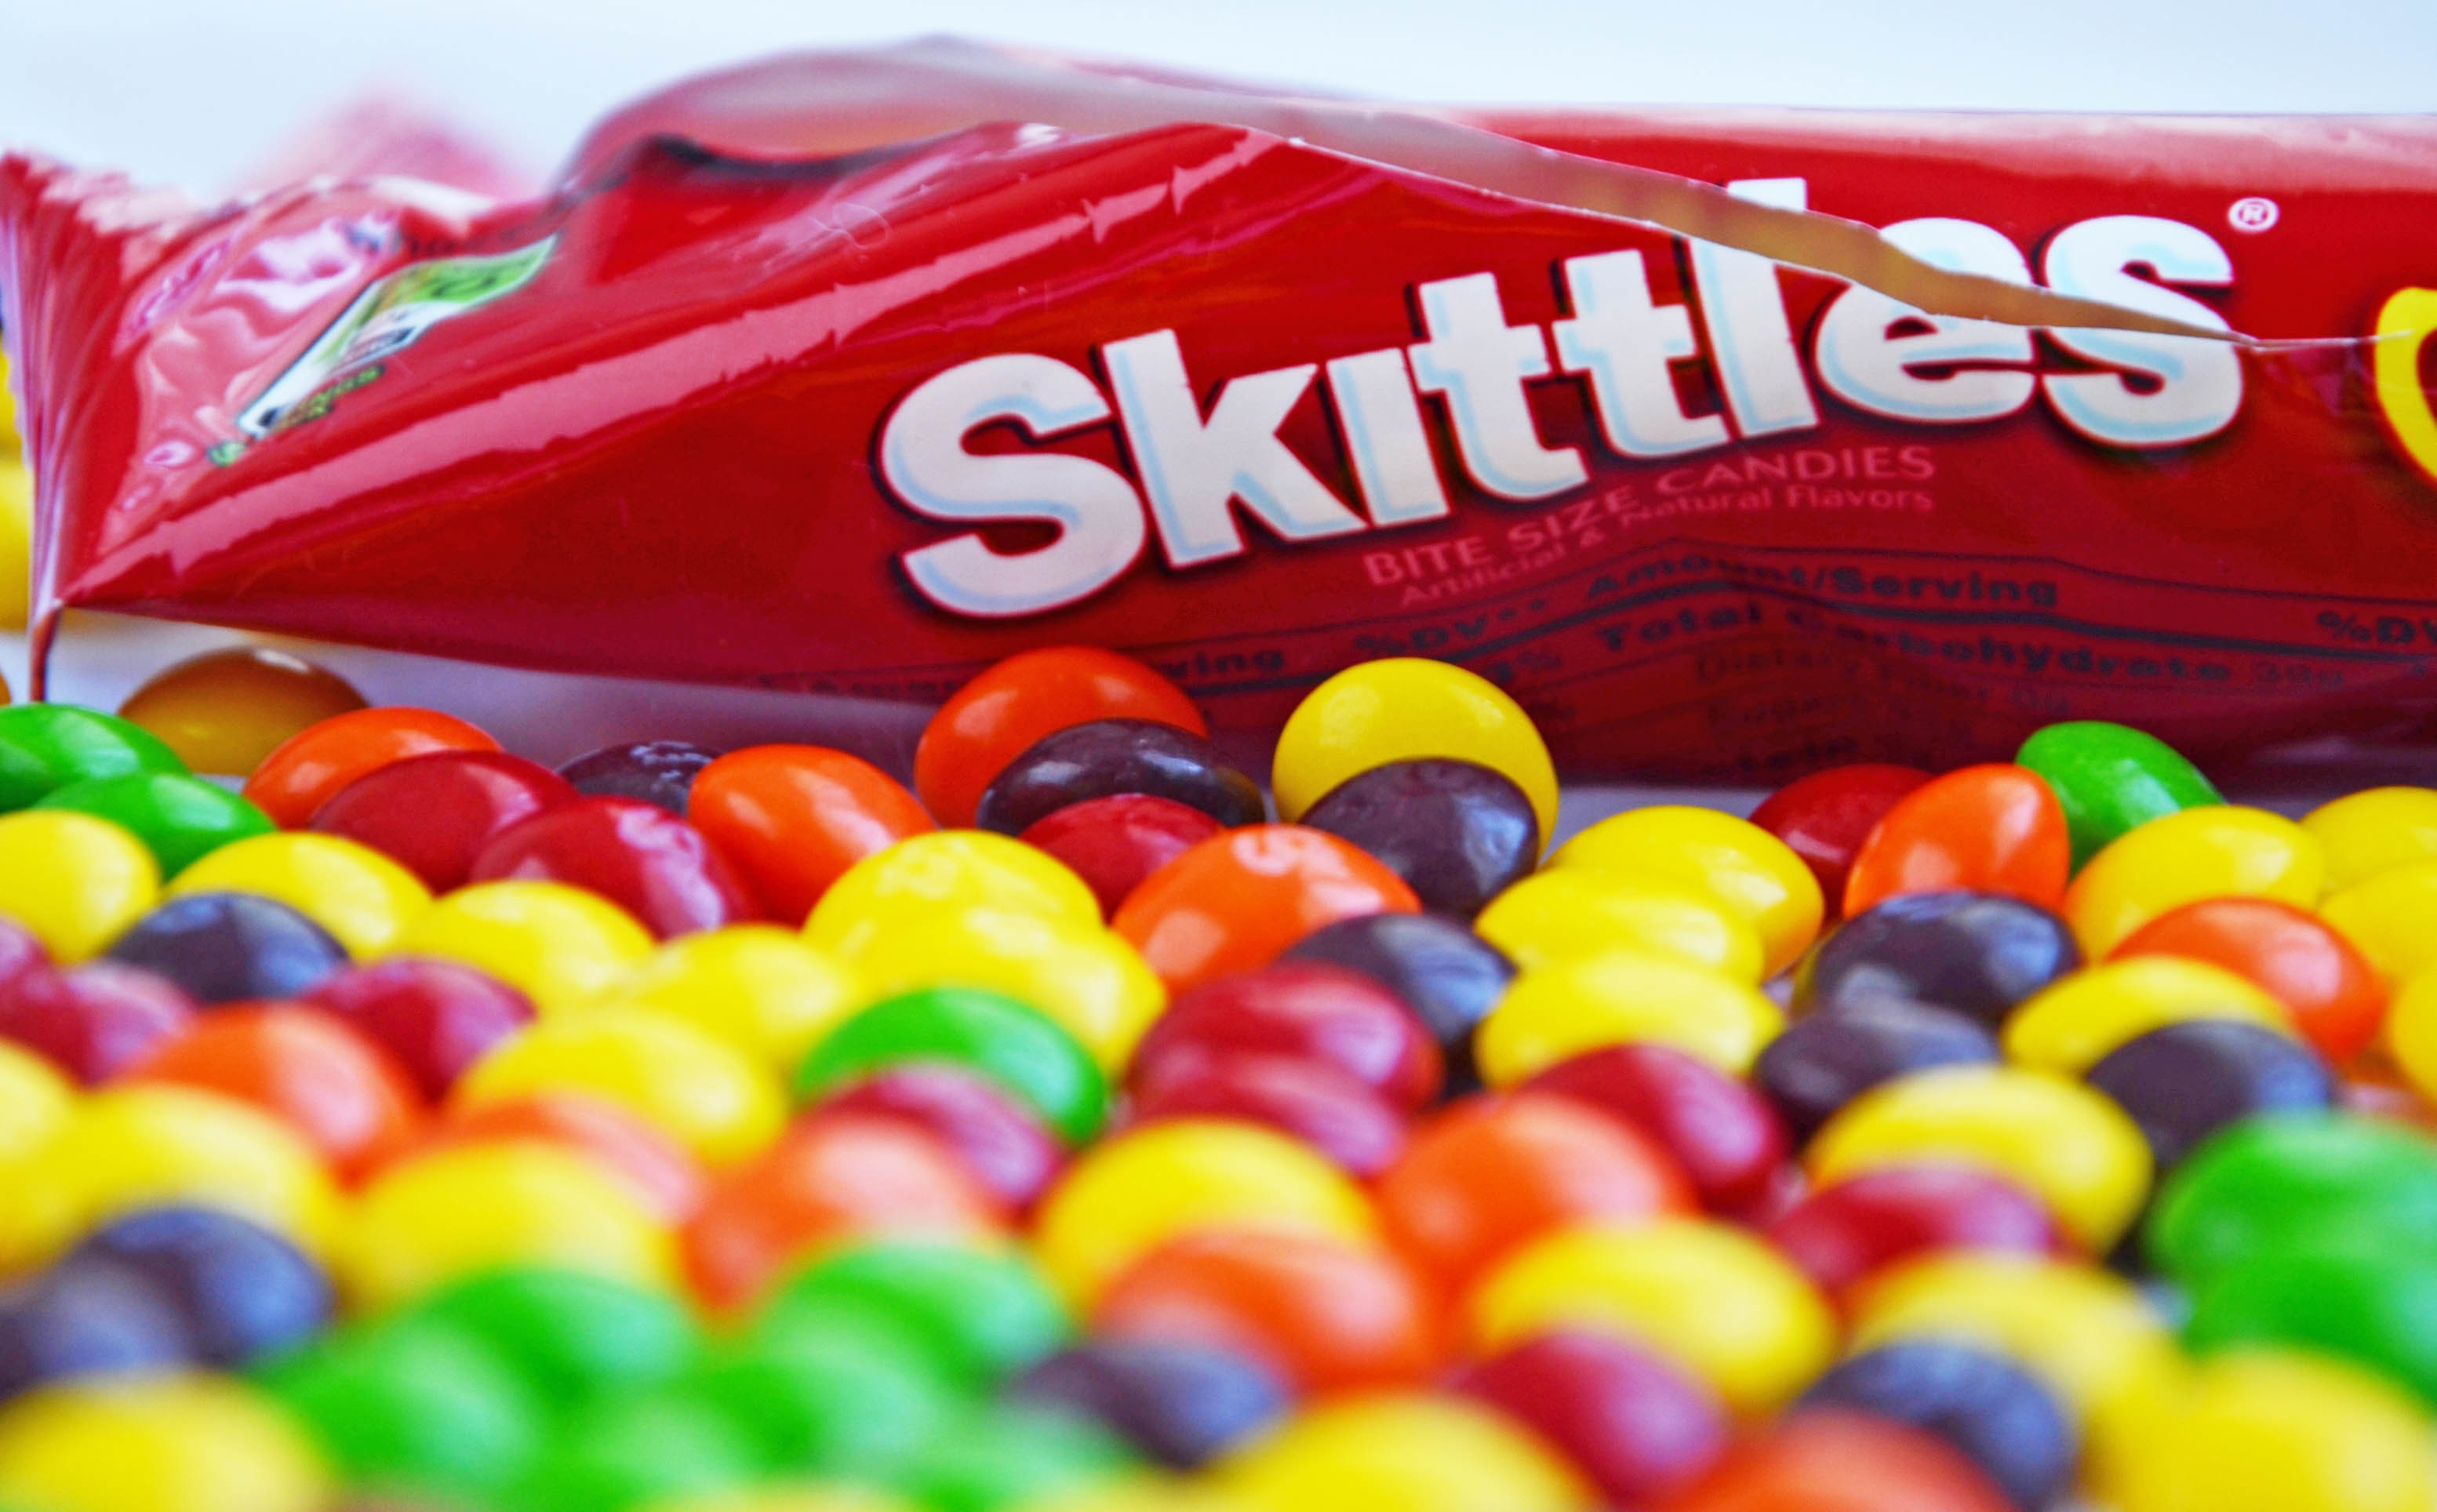 Res: 3107x1928, Skittles wallpapers